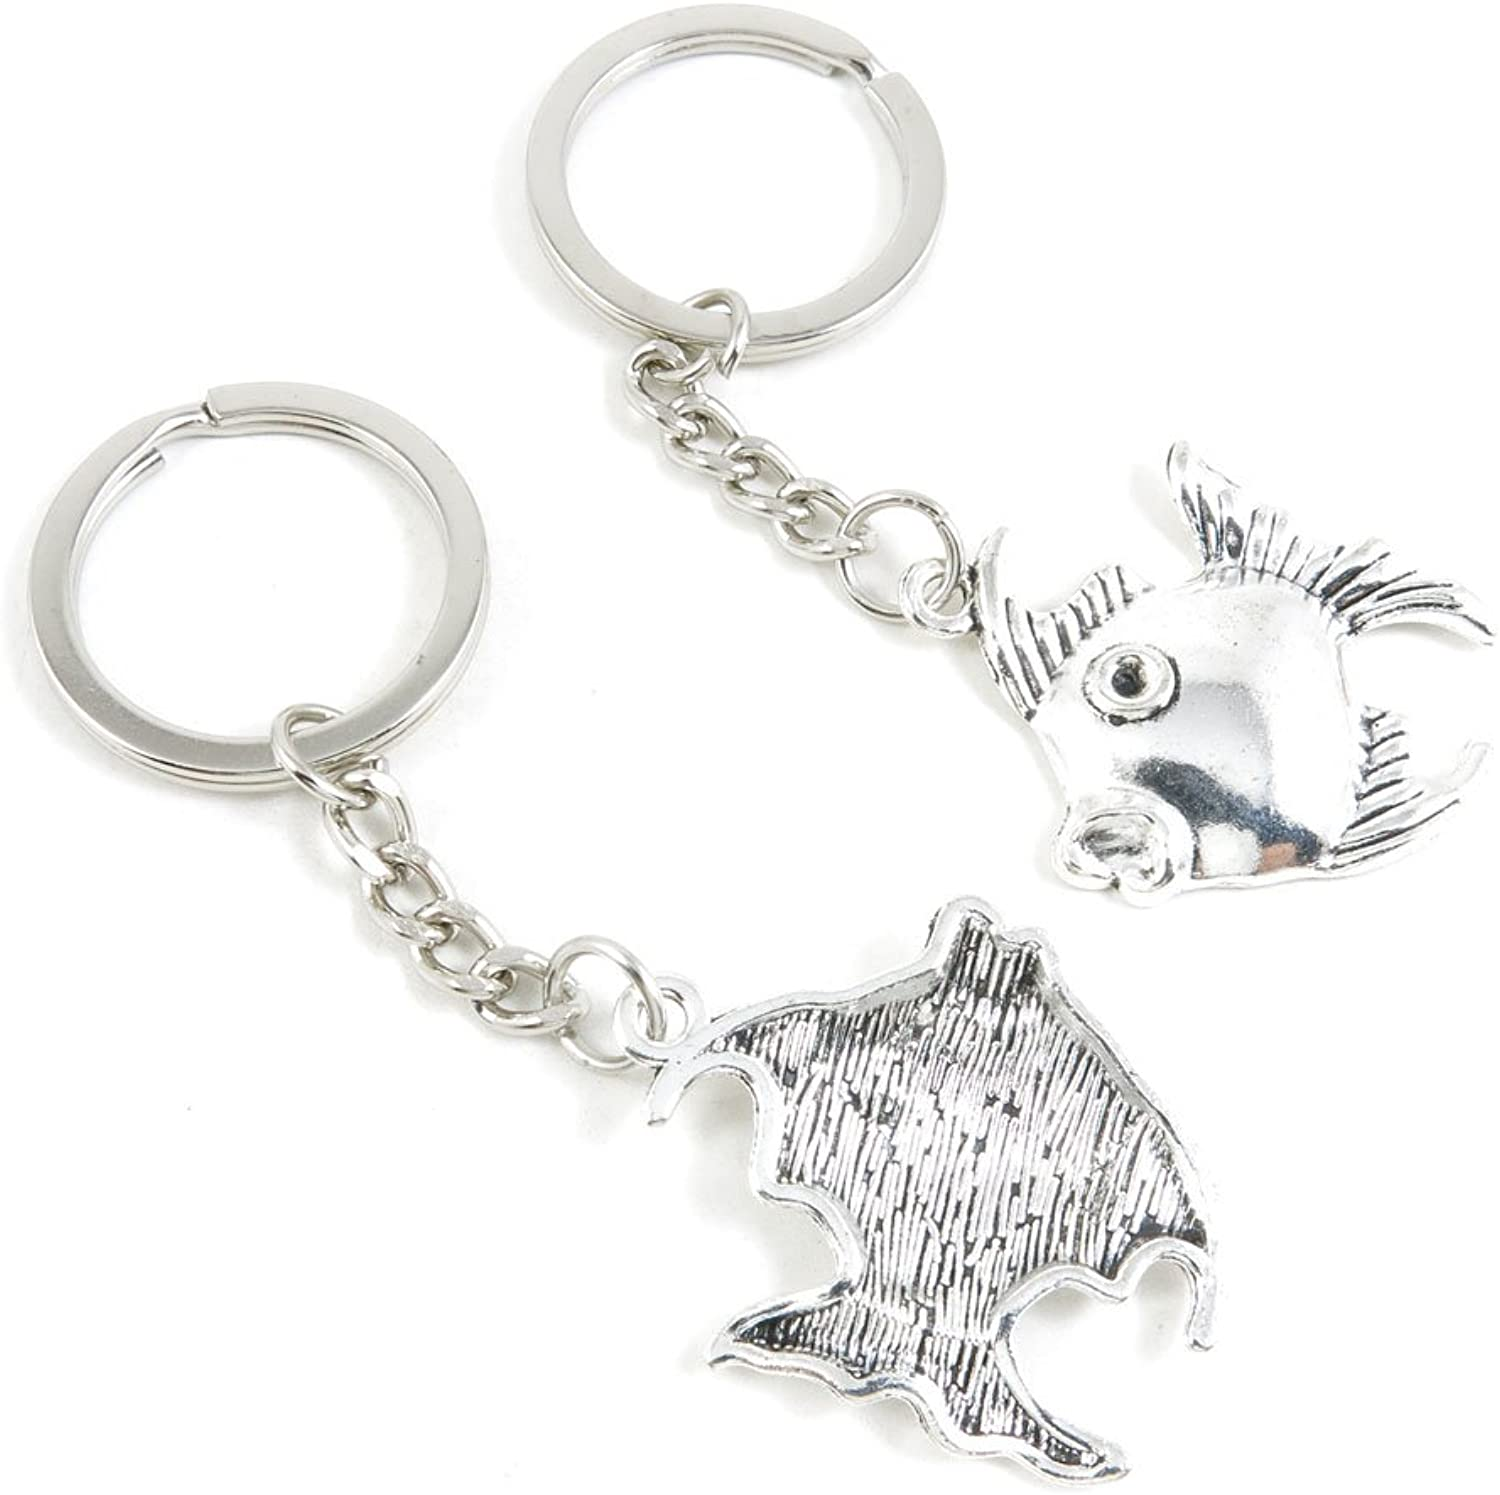 100 Pieces Keychain Keyring Door Car Key Chain Ring Tag Charms Bulk Supply Jewelry Making Clasp Findings X4AW2I Tropical Fish